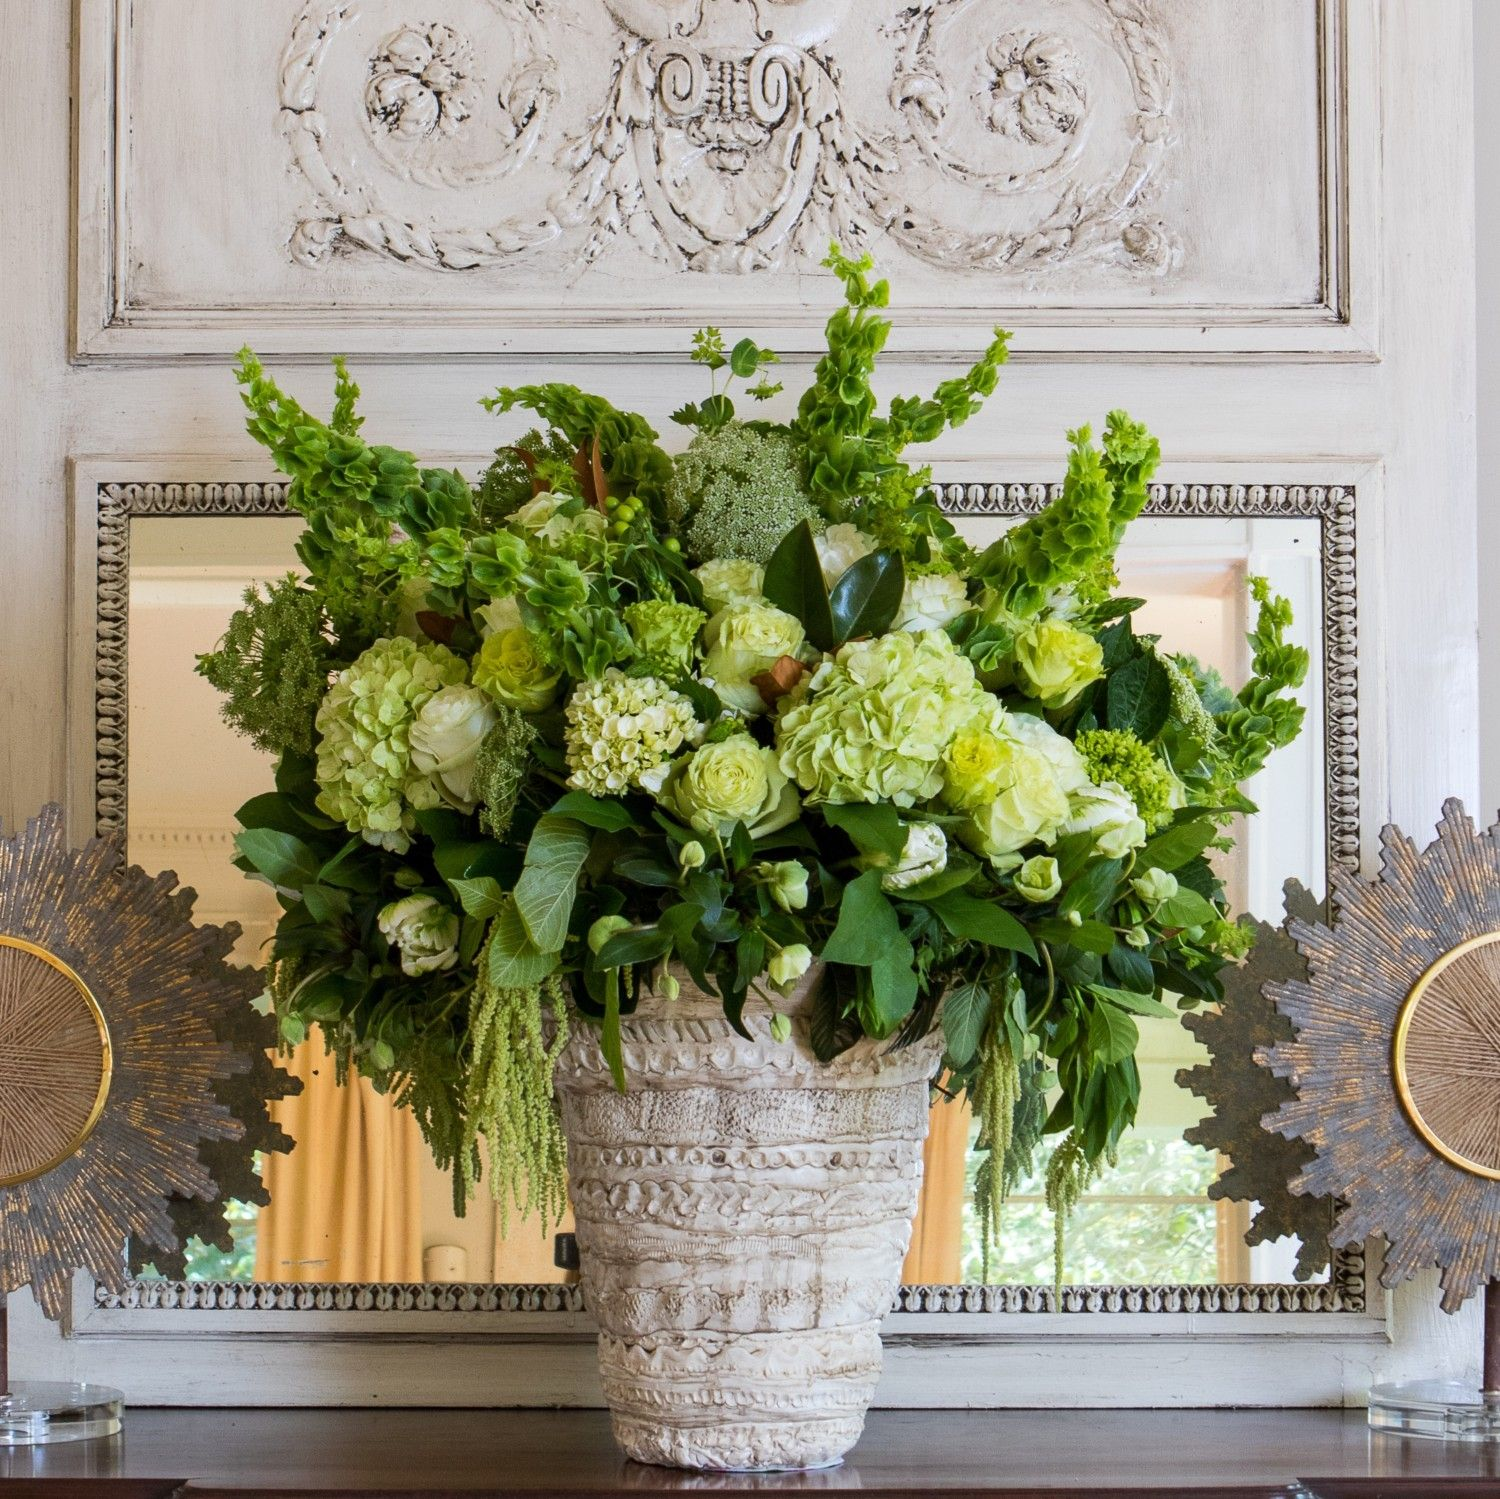 Keeping Hydrangea Flowers Hydrated Hydrangea Flower Arrangements Hydrangea Arrangements Rose Flower Arrangements